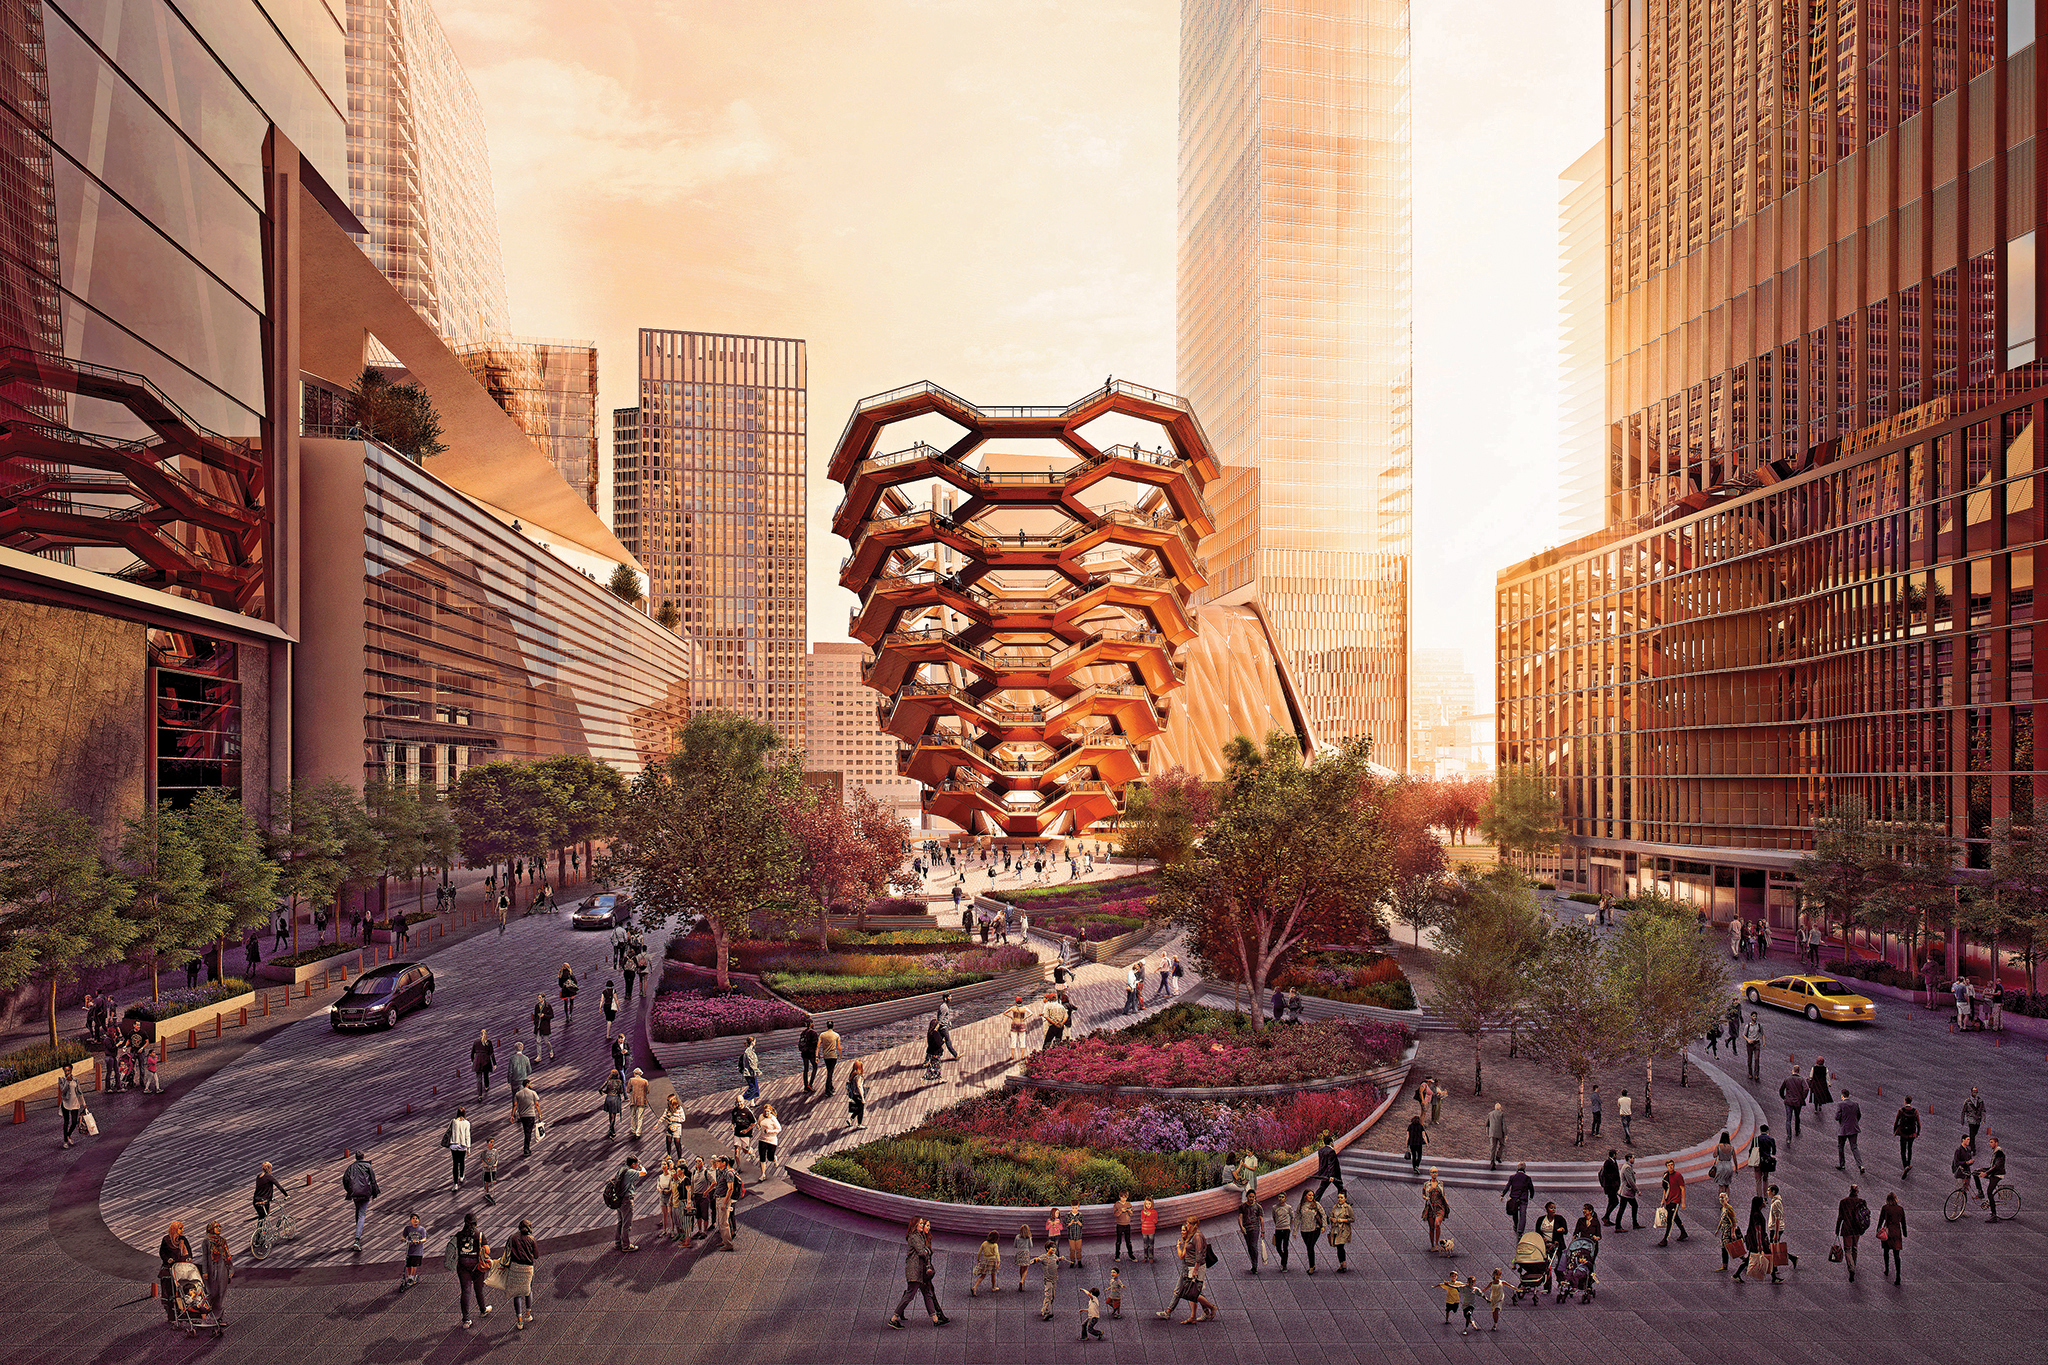 Sign up now to be one of the first to climb the massive new interactive sculpture, The Vessel